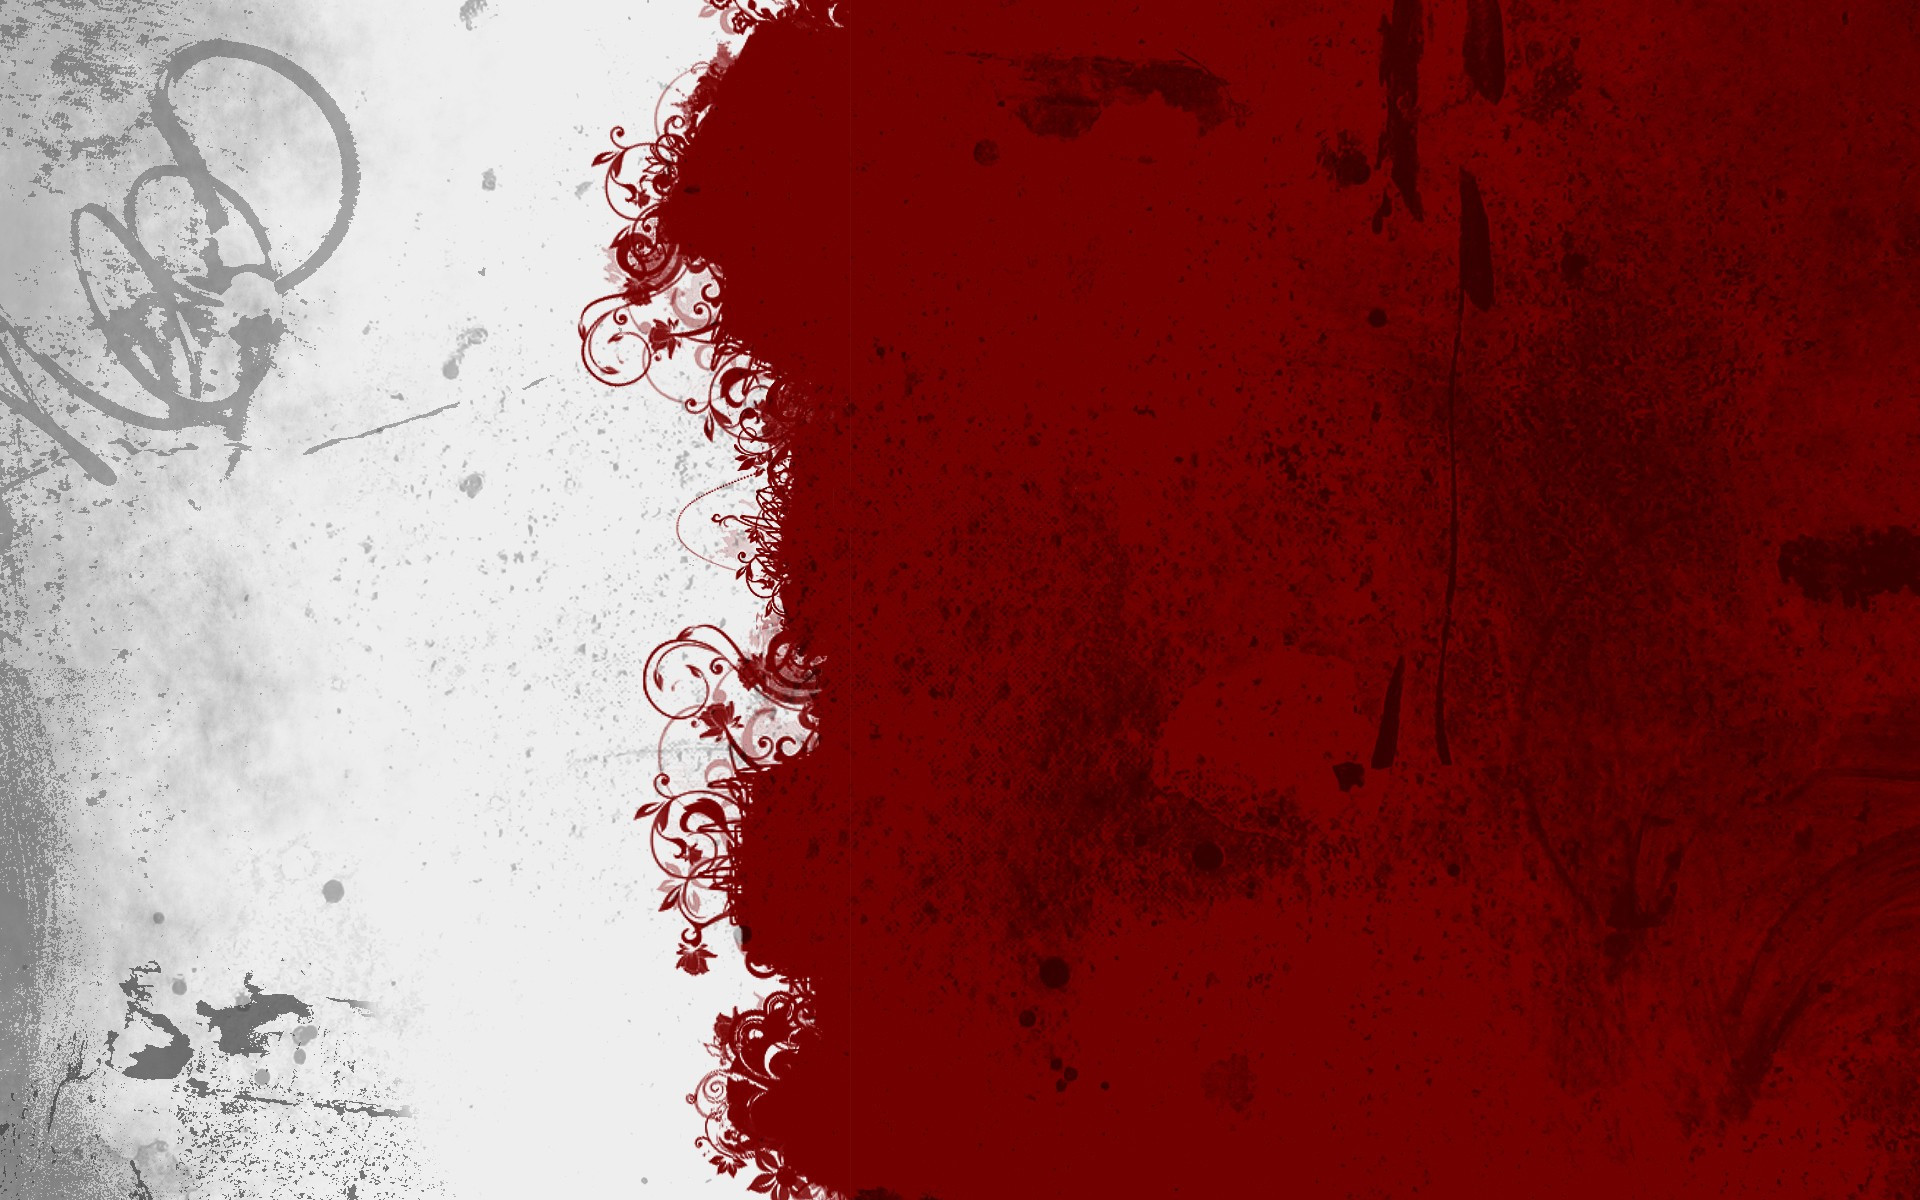 … Red and white grunge texture HD Wallpaper 1920×1200